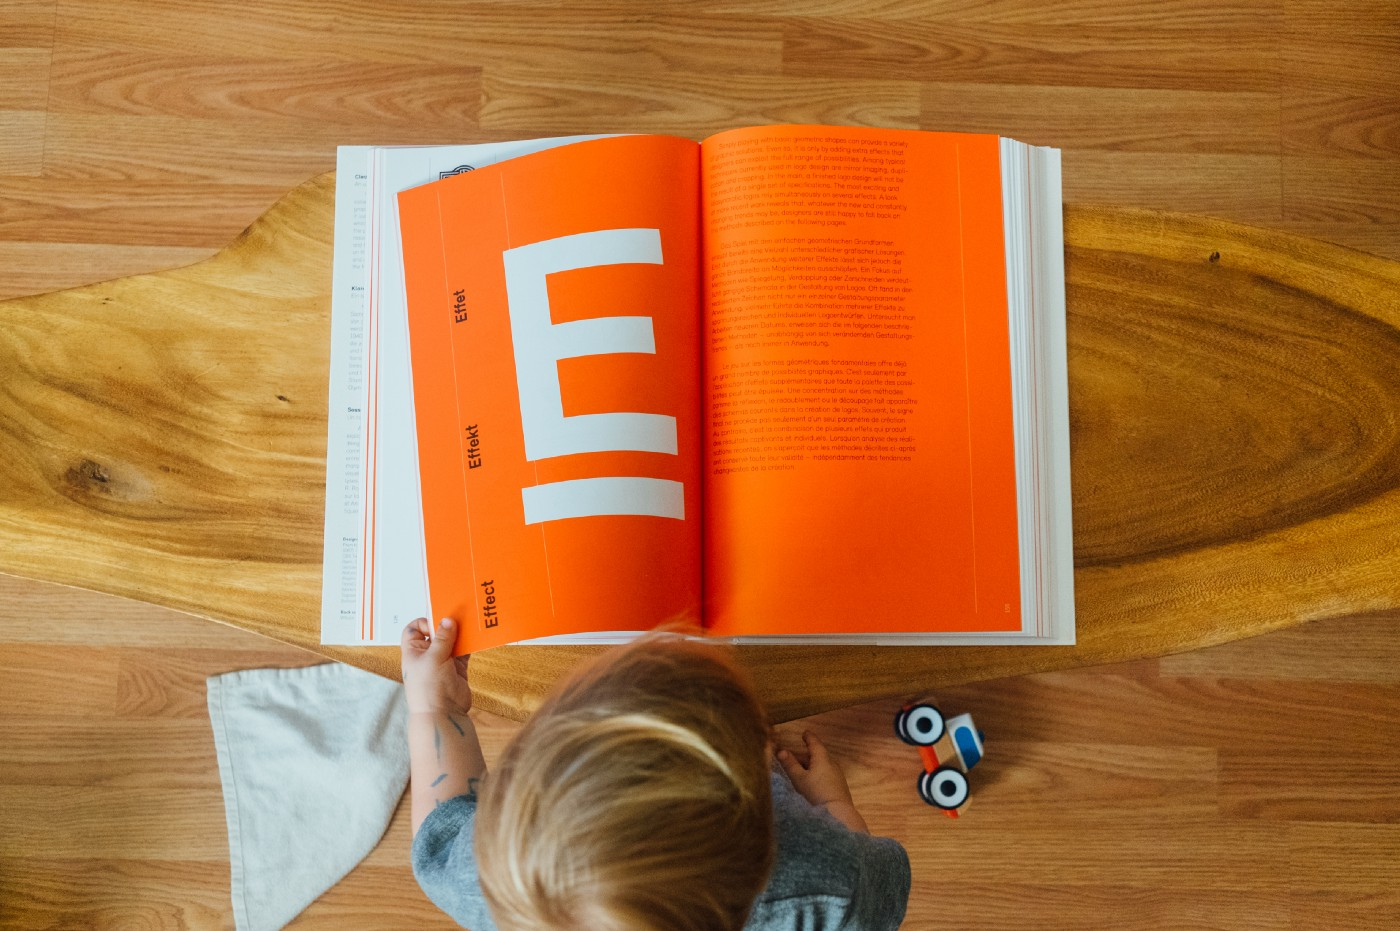 Little boy flipping through book with bright orange pages